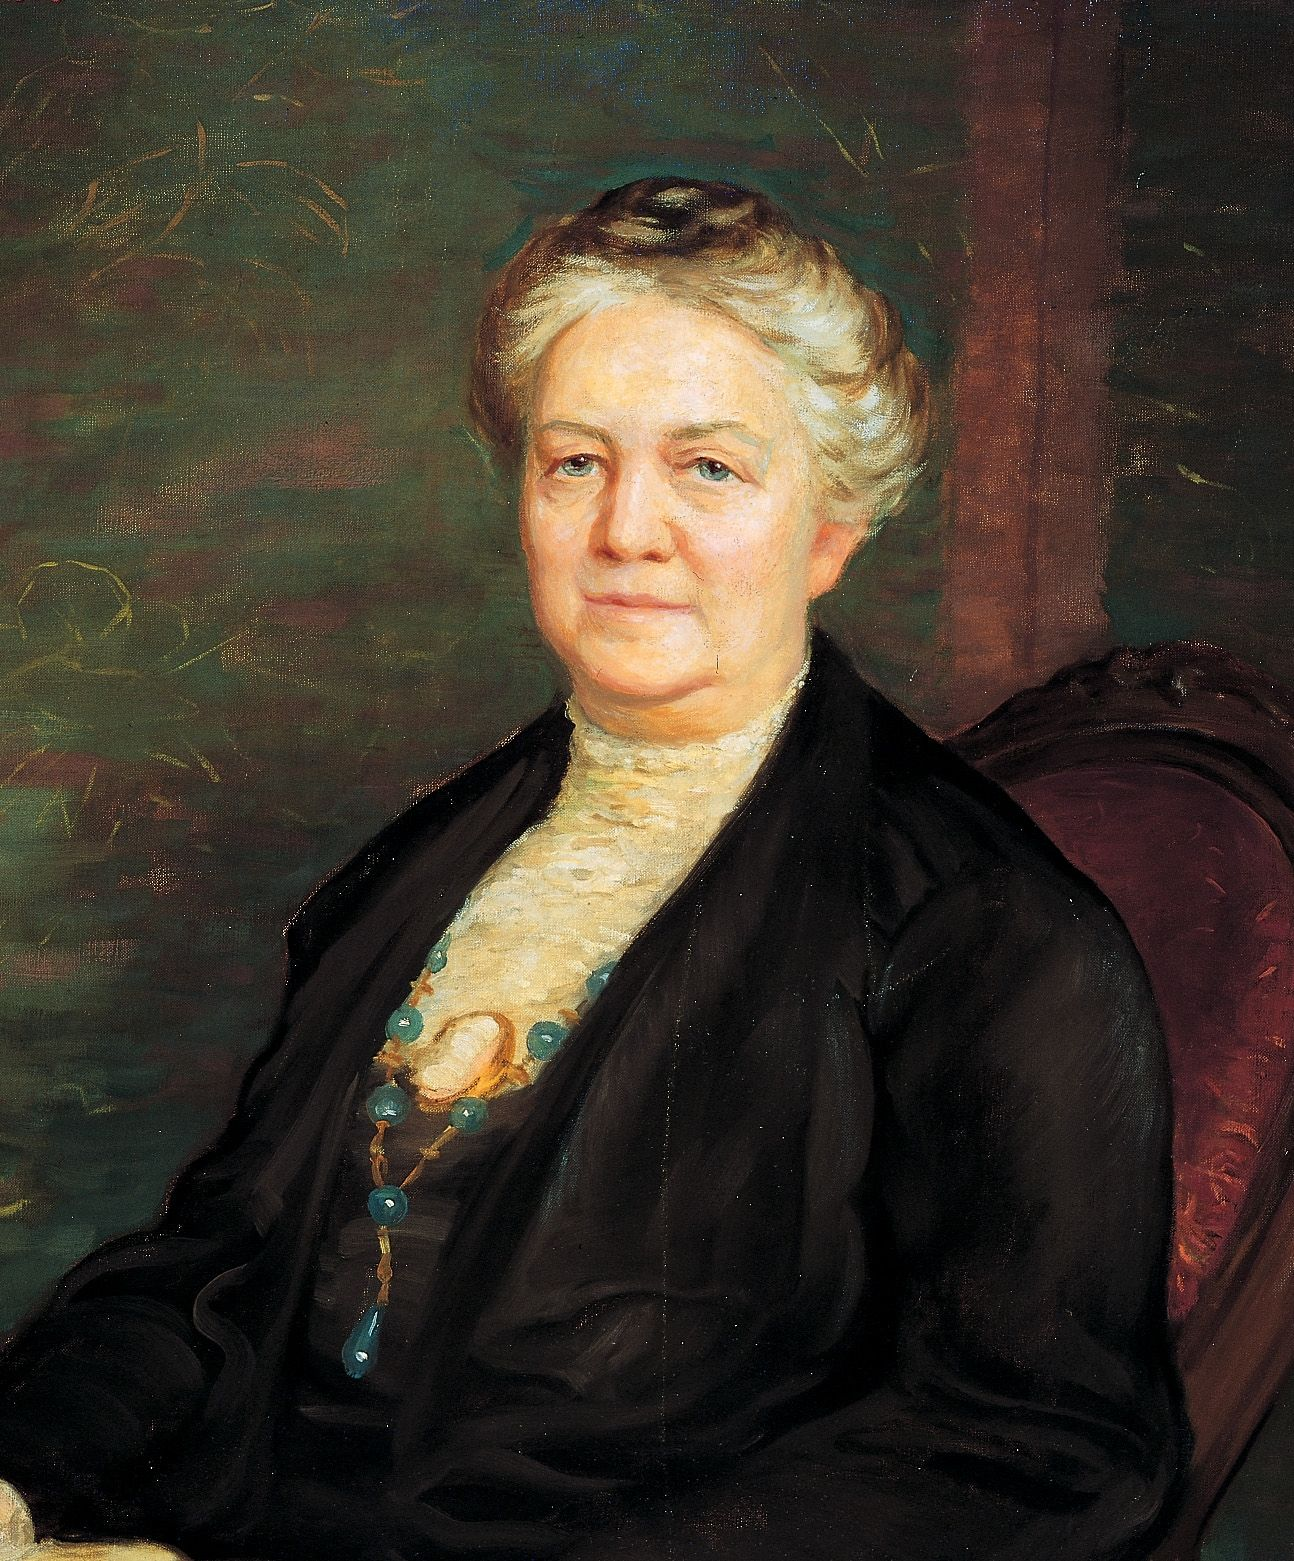 A portrait of Clarissa Smith Williams, who was the sixth general president of the Relief Society from 1921 to 1928; painted by Lee Greene Richards.